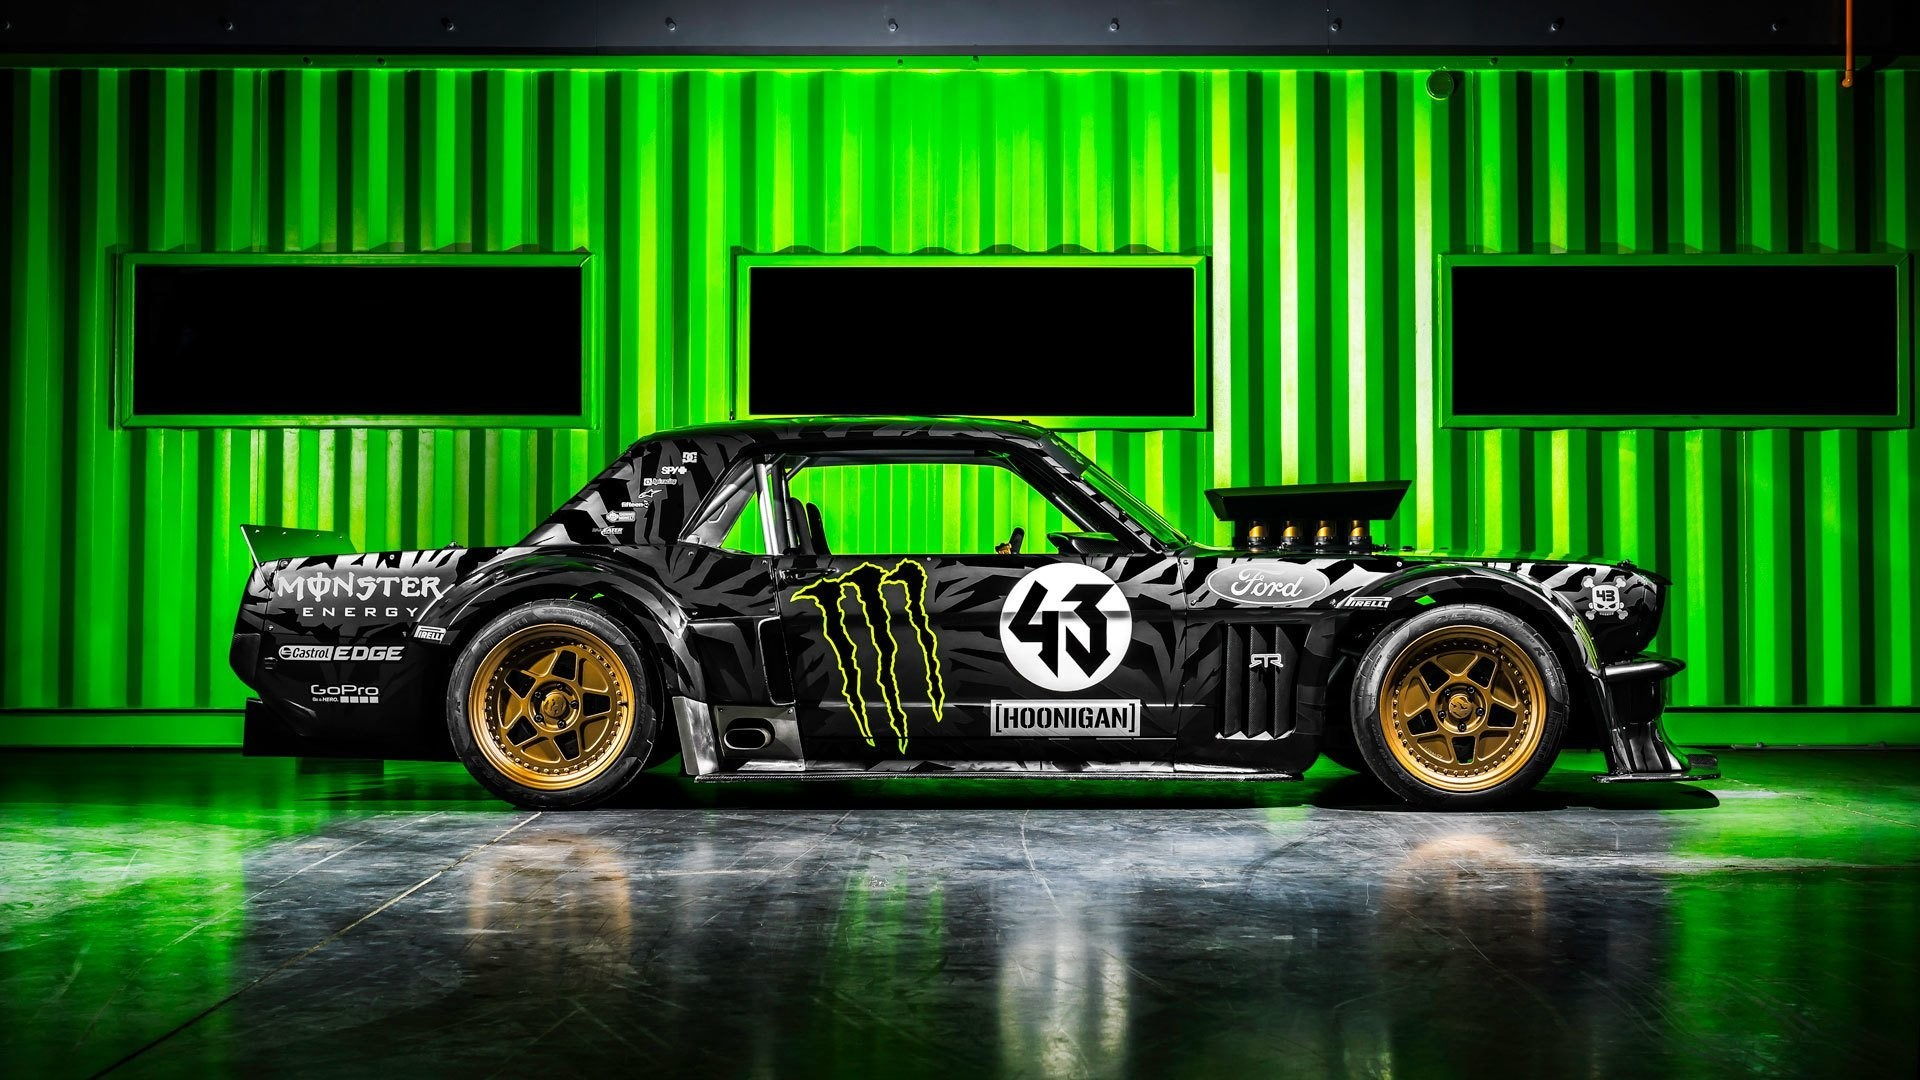 1920x1080 ford mustang rtr 1965 hoonicorn 845 hp gymkhana seven side ken block  monster energy